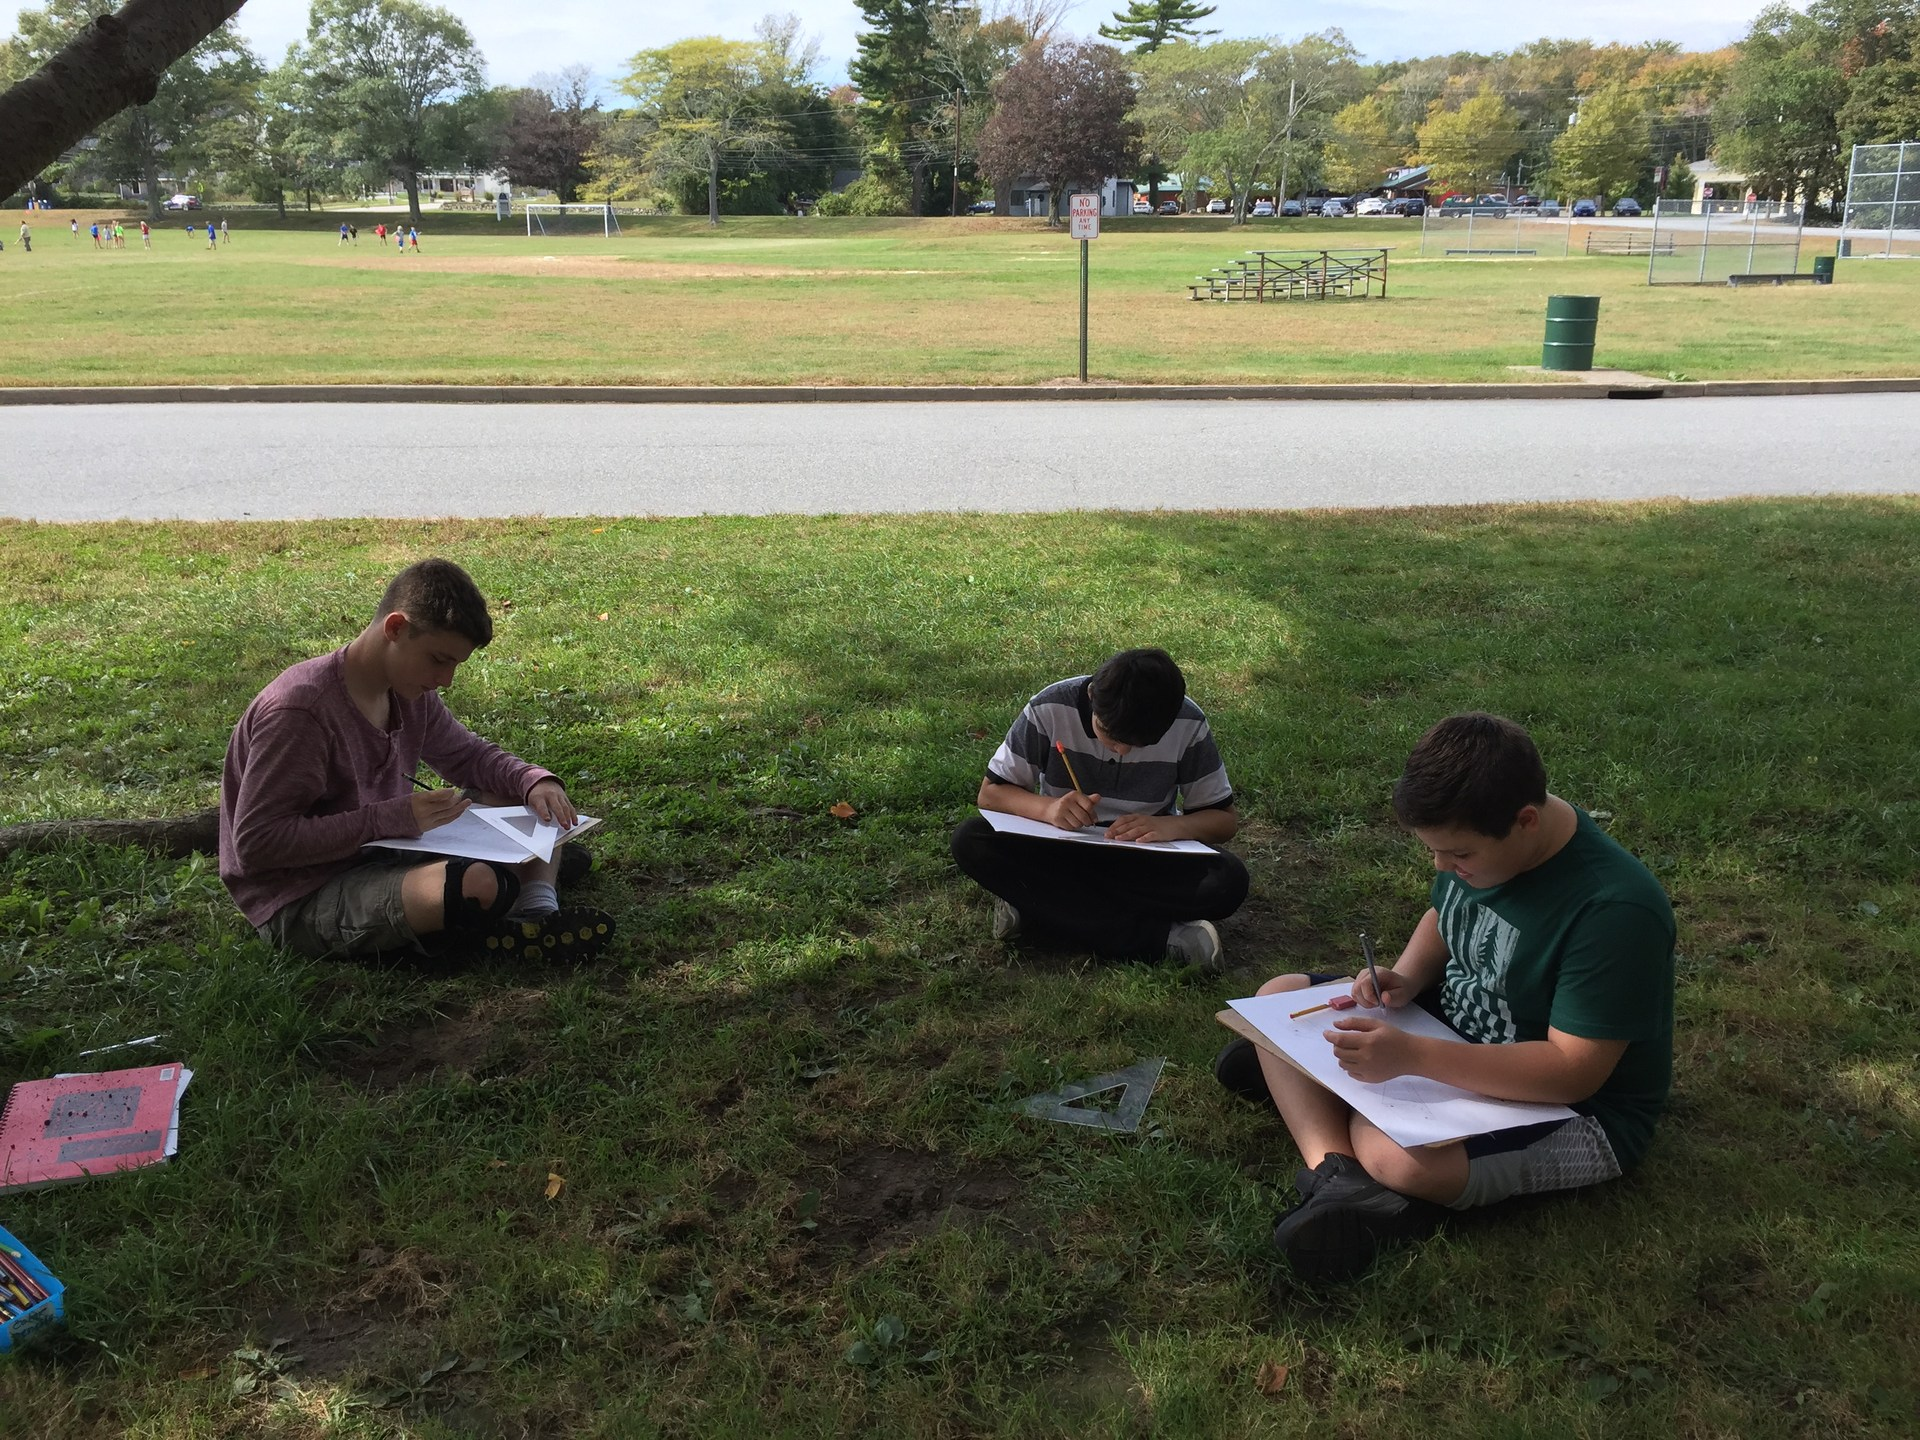 Students sketching outside